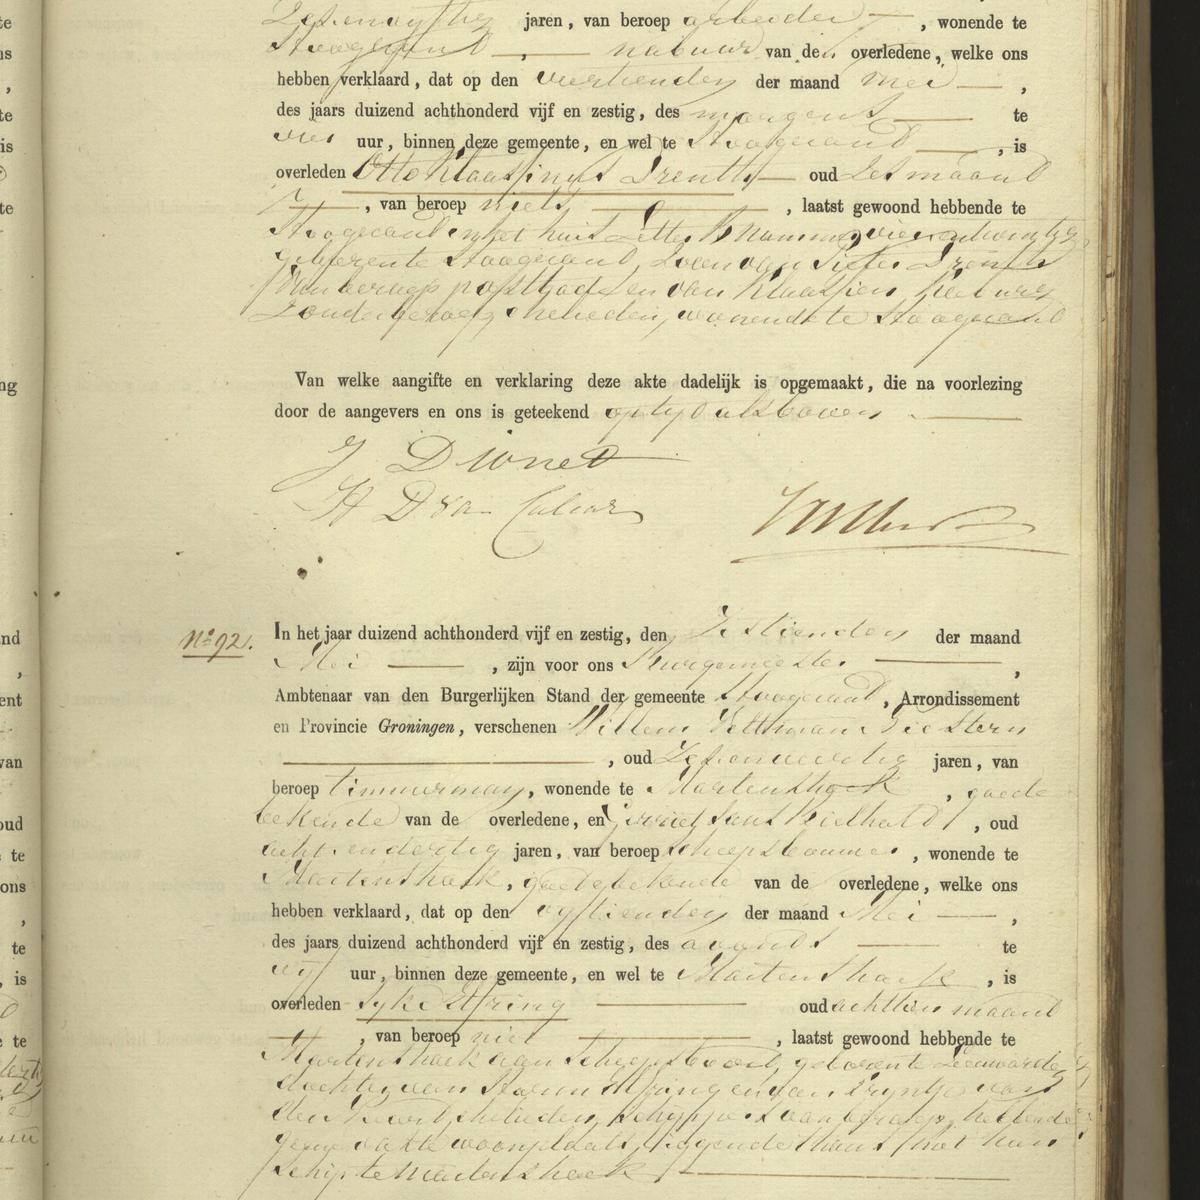 Civil registry of deaths, Hoogezand, 1865, records 91-92